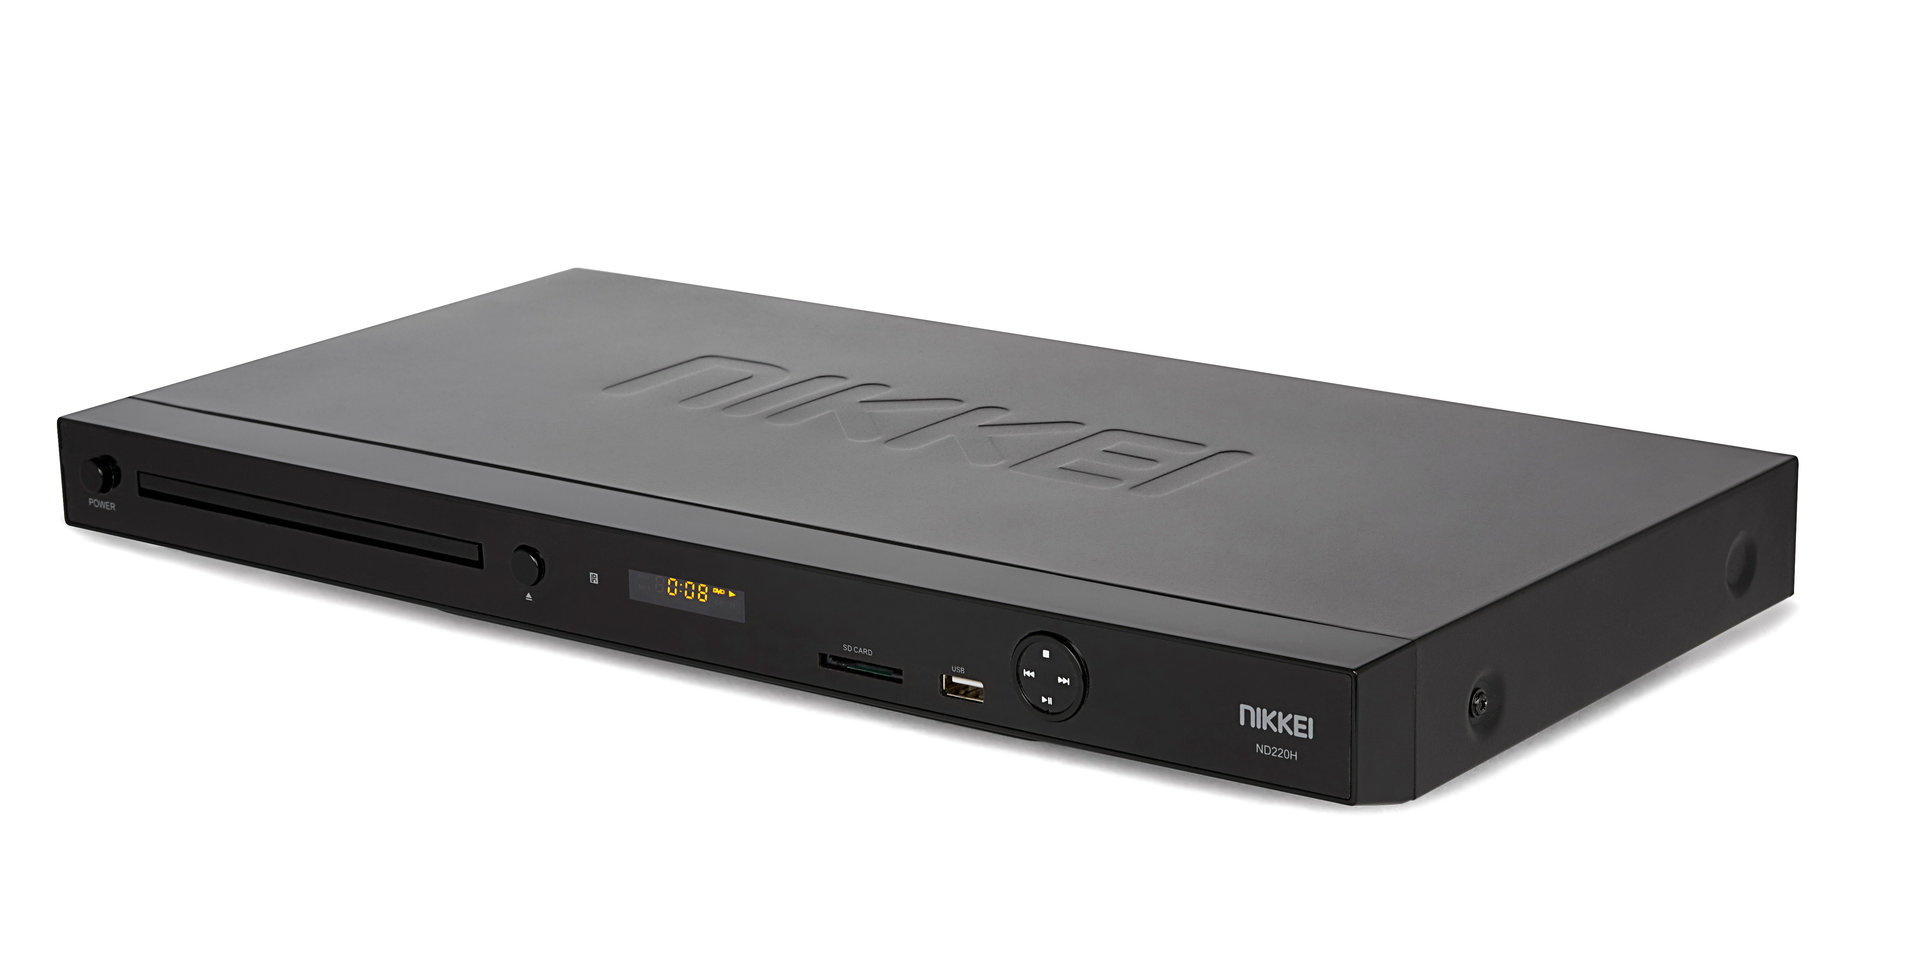 Nikkei ND220H DVD-player with HDMI, USB-port and Cardreader (43 cm)